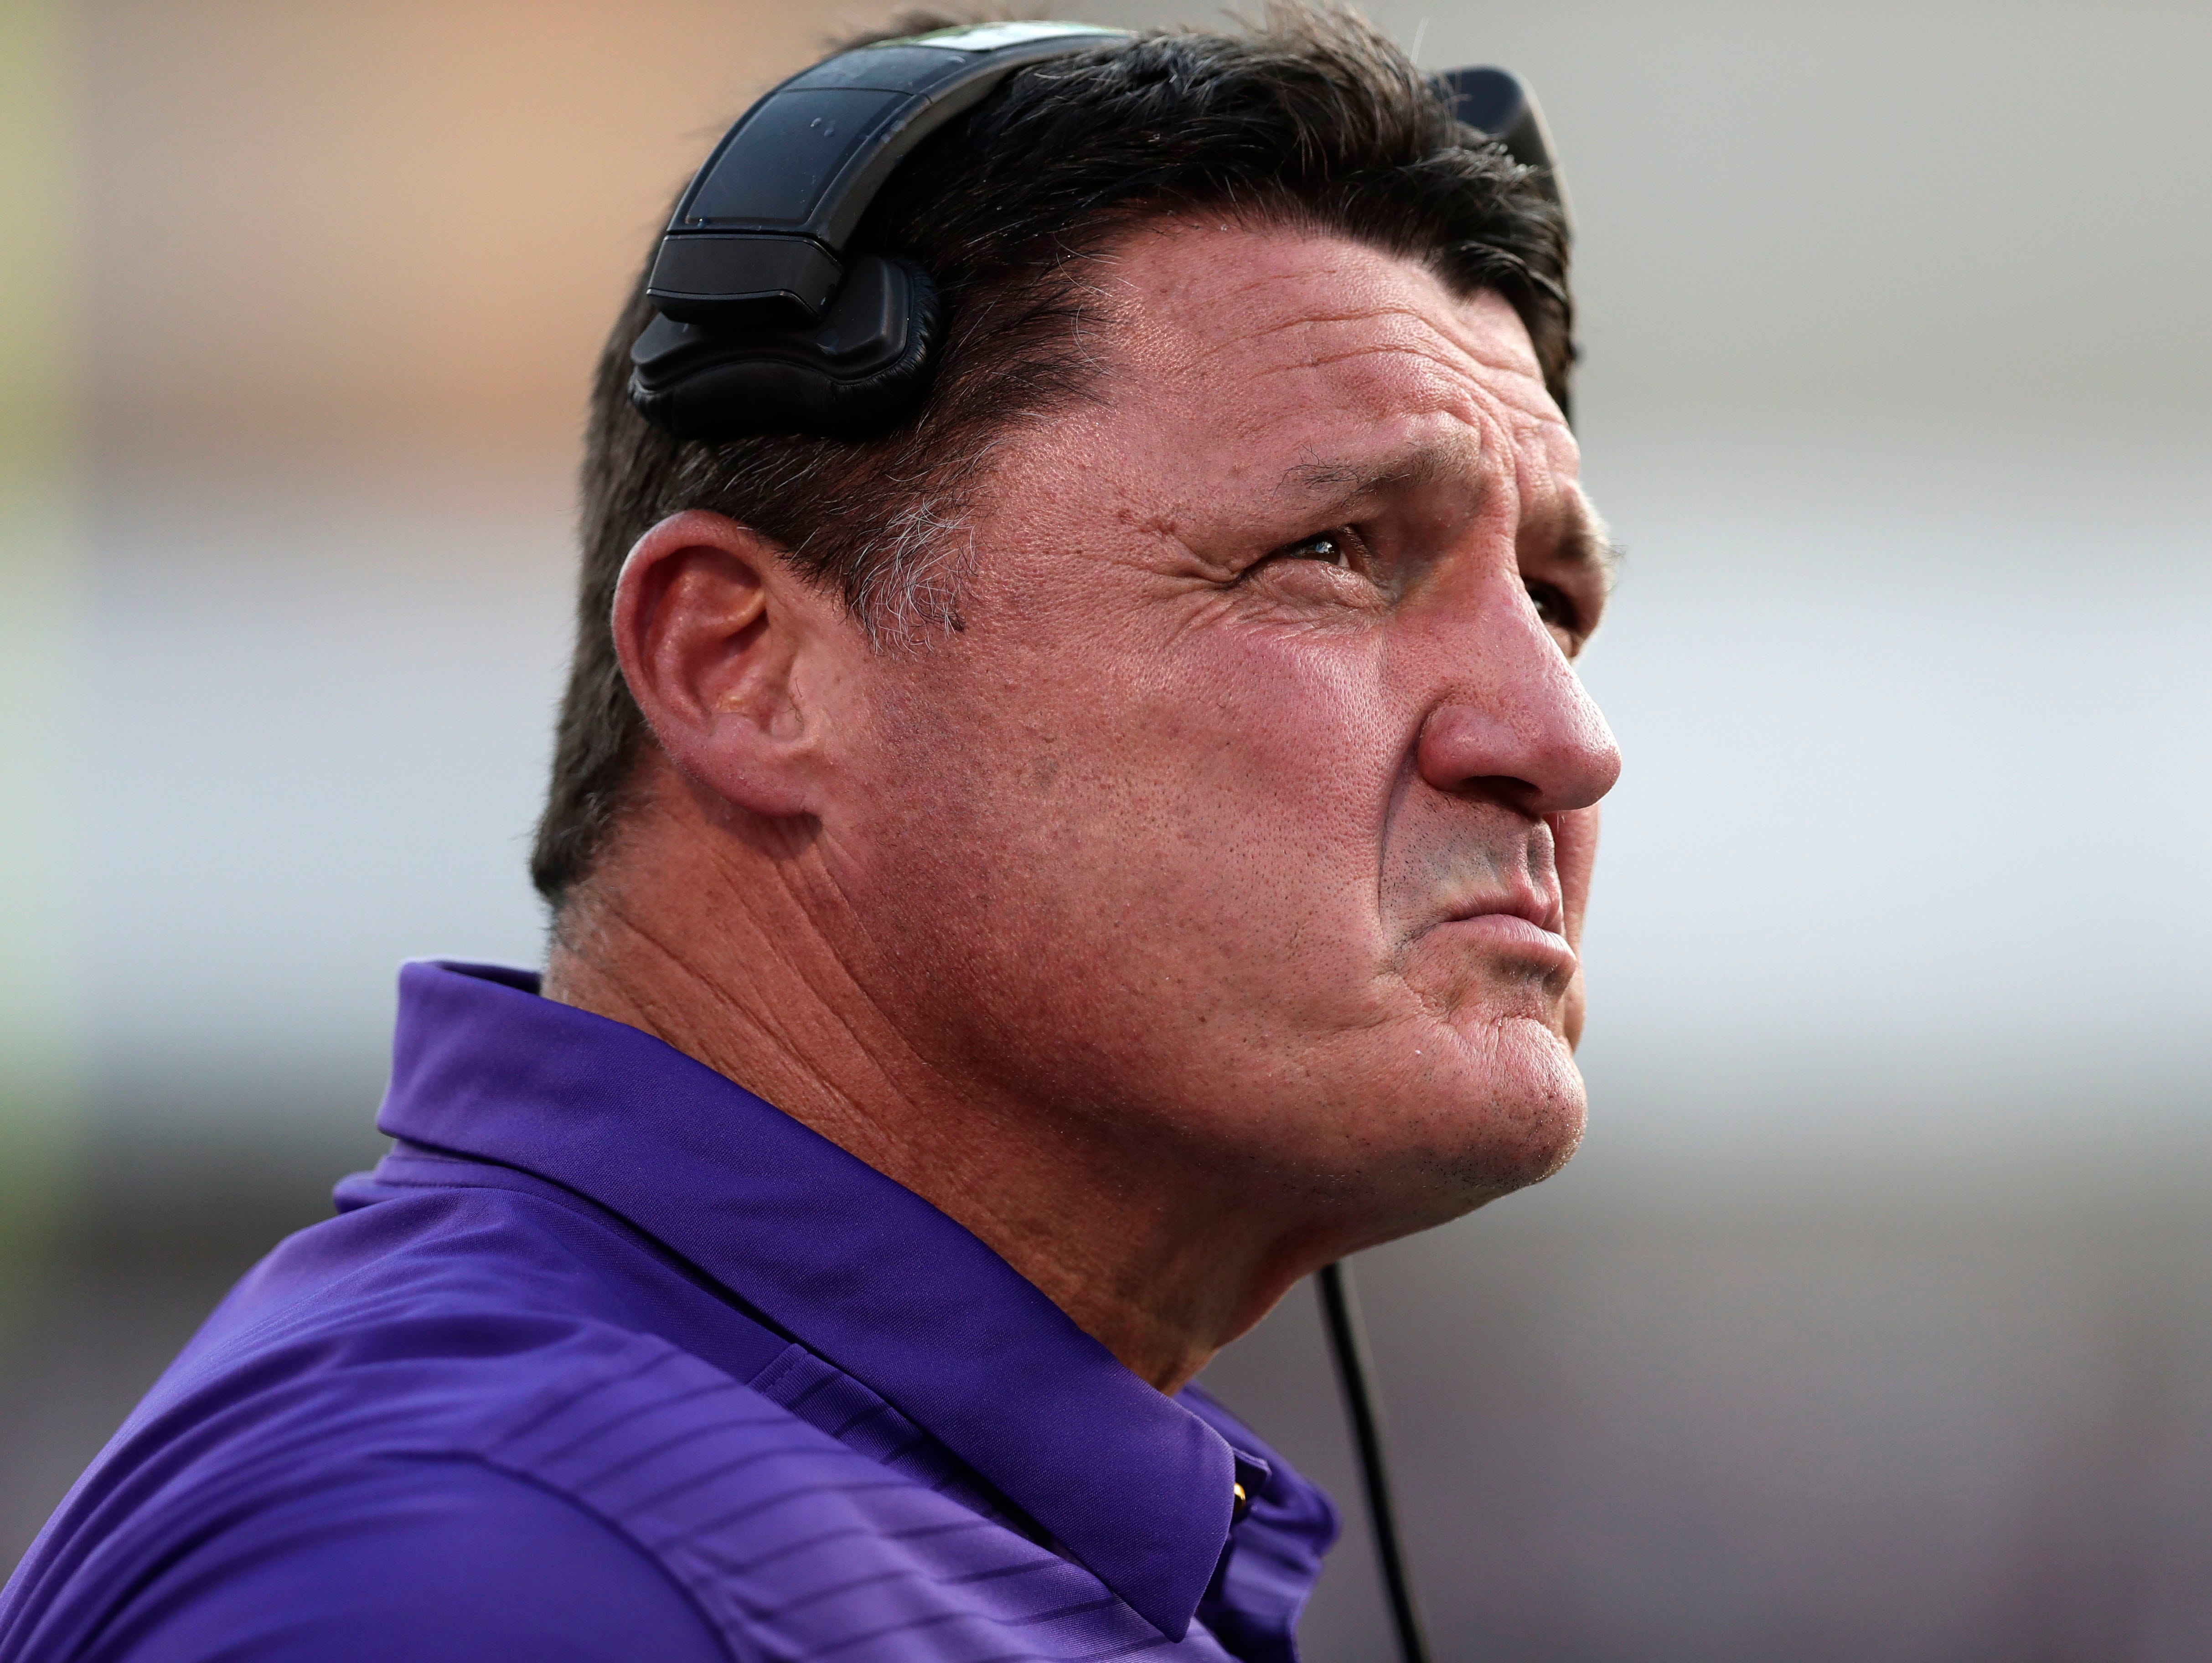 LSU head coach Ed Orgeron looks at a replay on the end zone screen during the first half of their NCAA college football game against Mississippi State in Starkville, Miss., Saturday, Sept. 16, 2017.